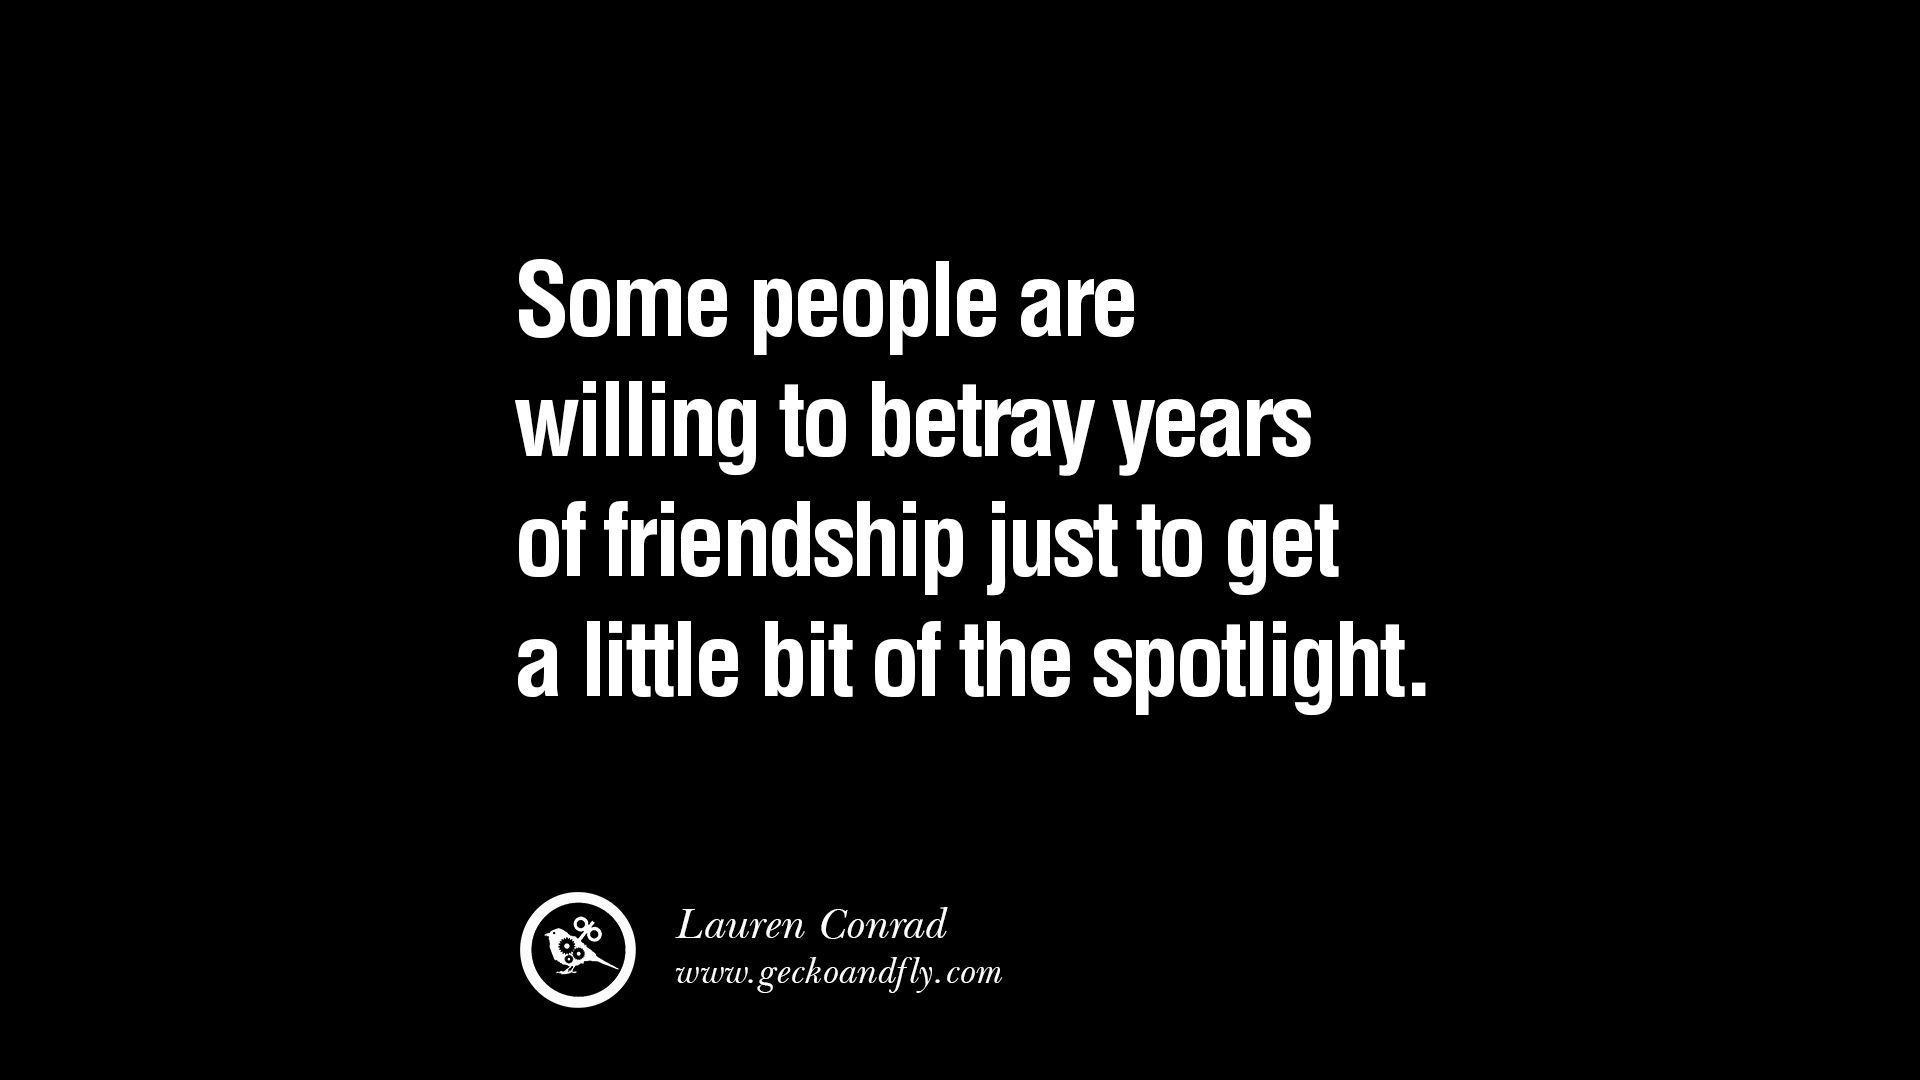 Betrayed Quotes Quotesgram: Friend Betrayal Quotes Life. QuotesGram